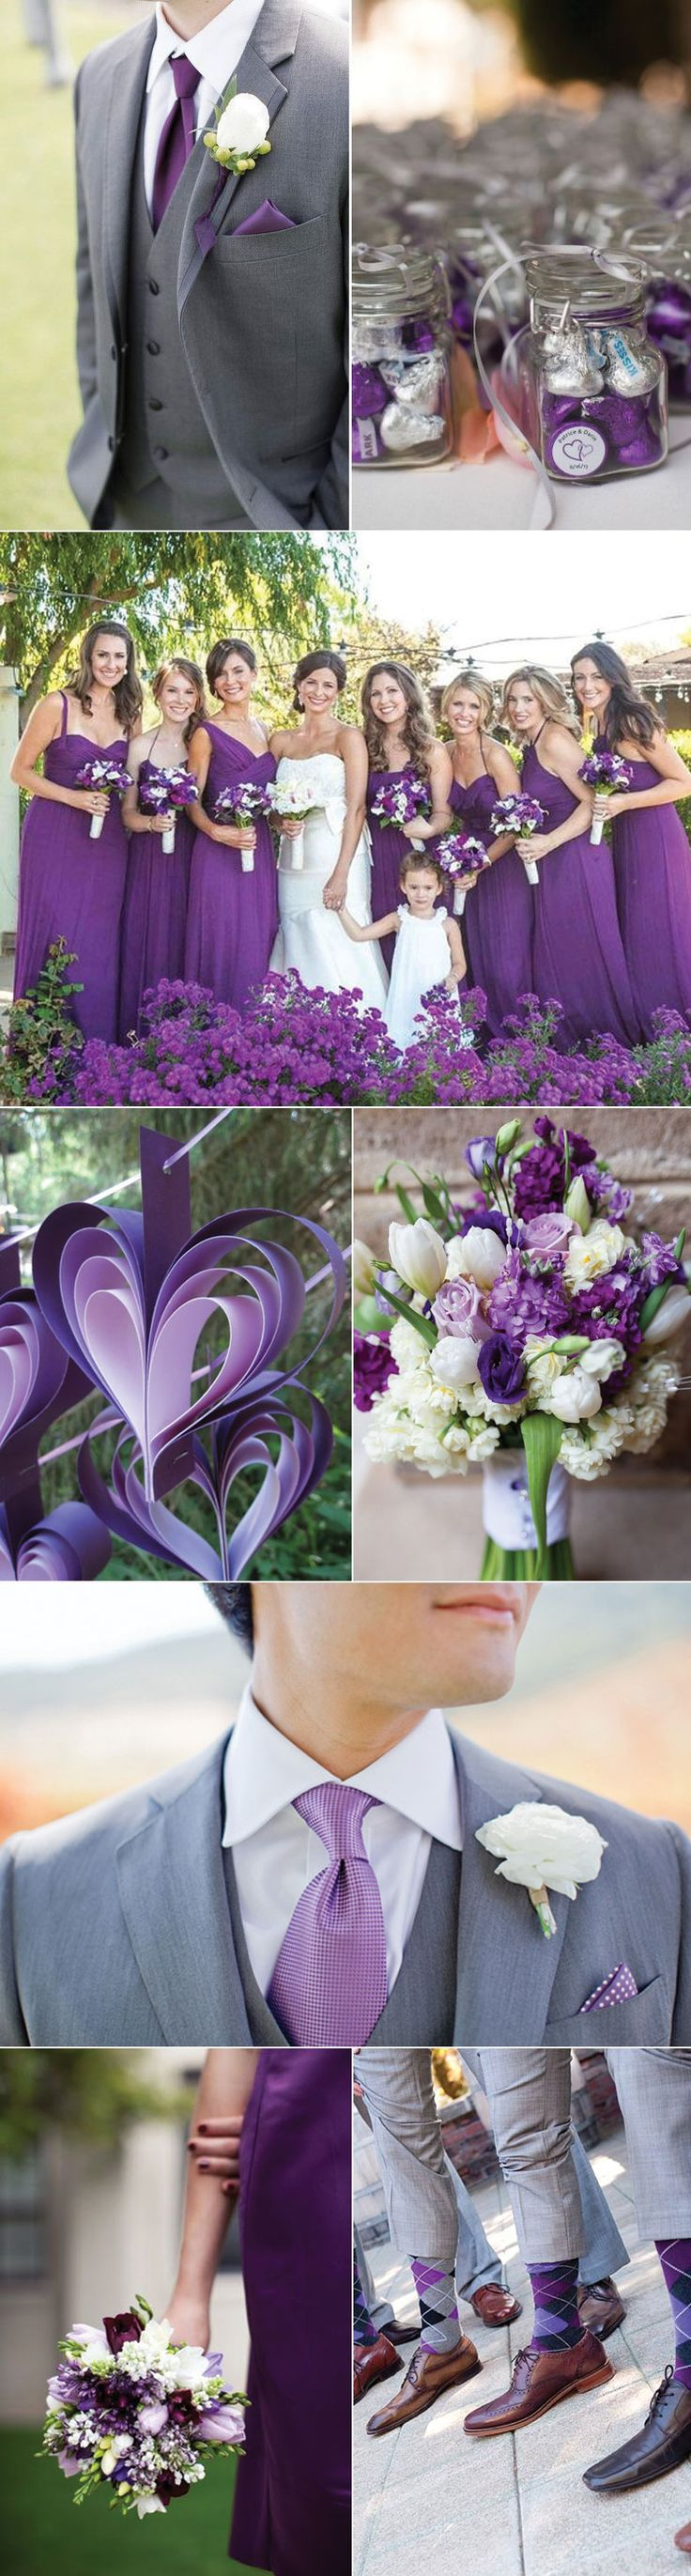 Mulberry Wedding |  Ideas and Visual Inspiration                                                                                                                                                                                 More